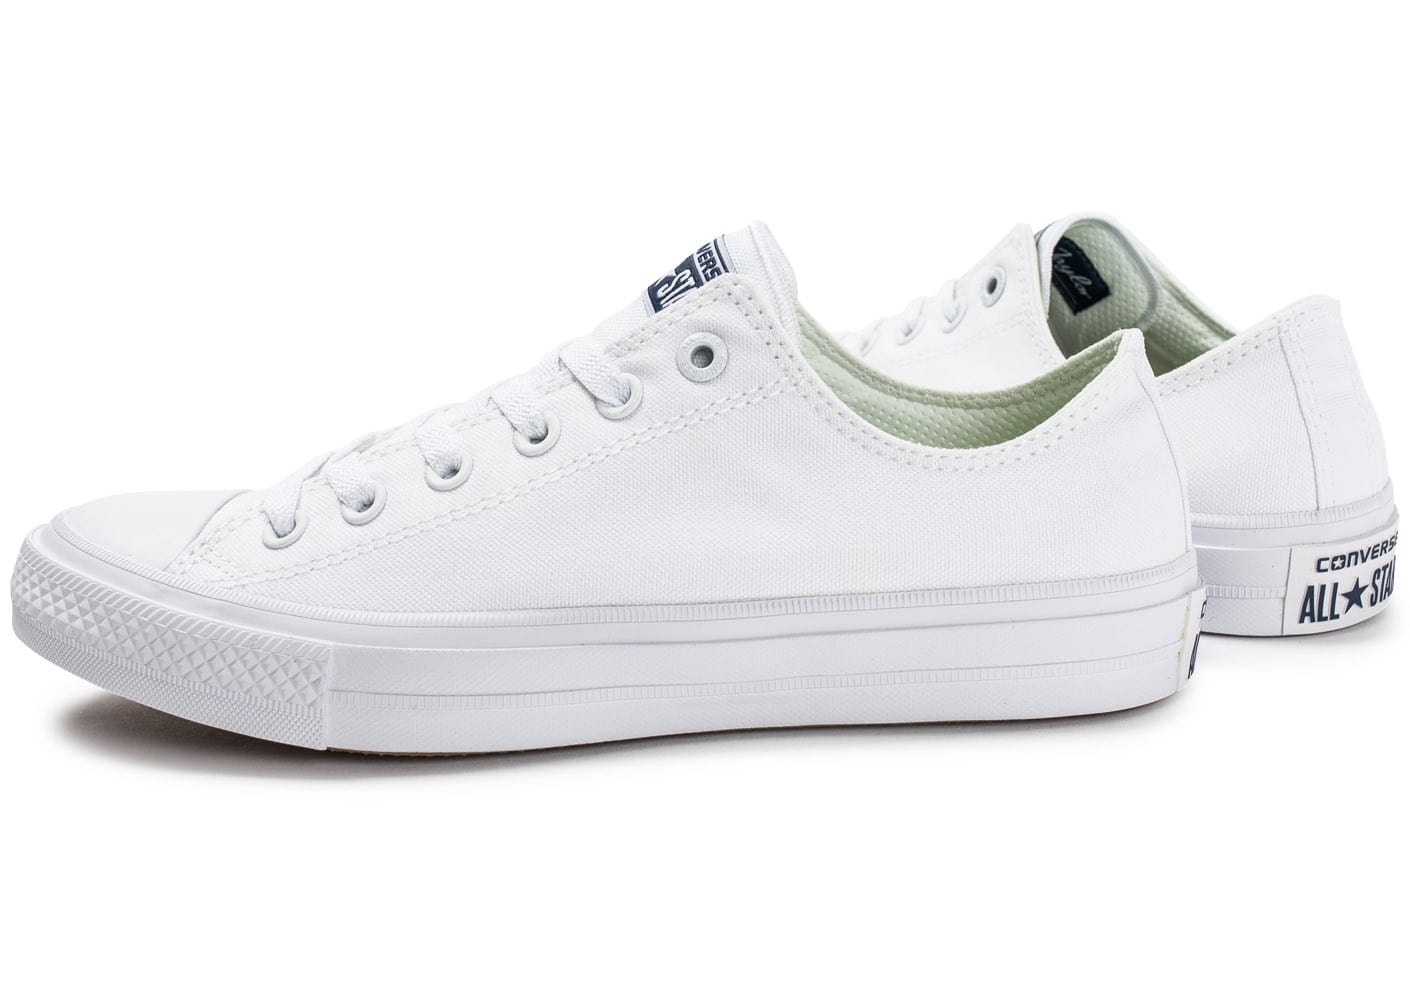 converse chuck taylor all star 2 ox blanche chaussures homme chausport. Black Bedroom Furniture Sets. Home Design Ideas